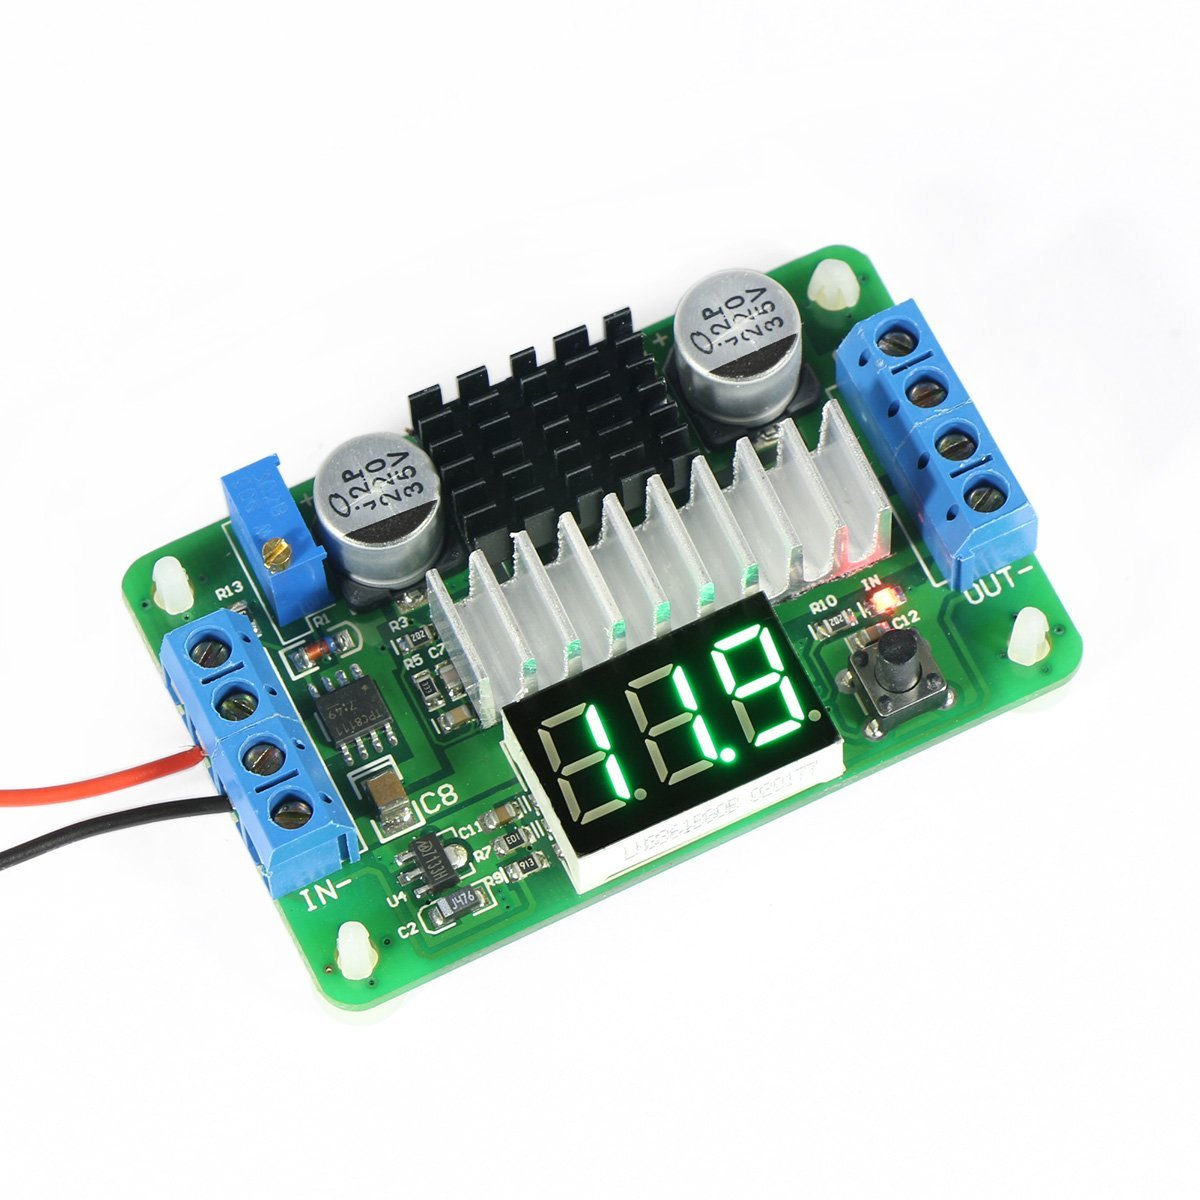 35v 30v Dc Boost Converter Power Transformer Voltage 5v 12v Step Up To Volt Module Supply Board For Car Auto Motorcycle In Superchargers Parts From